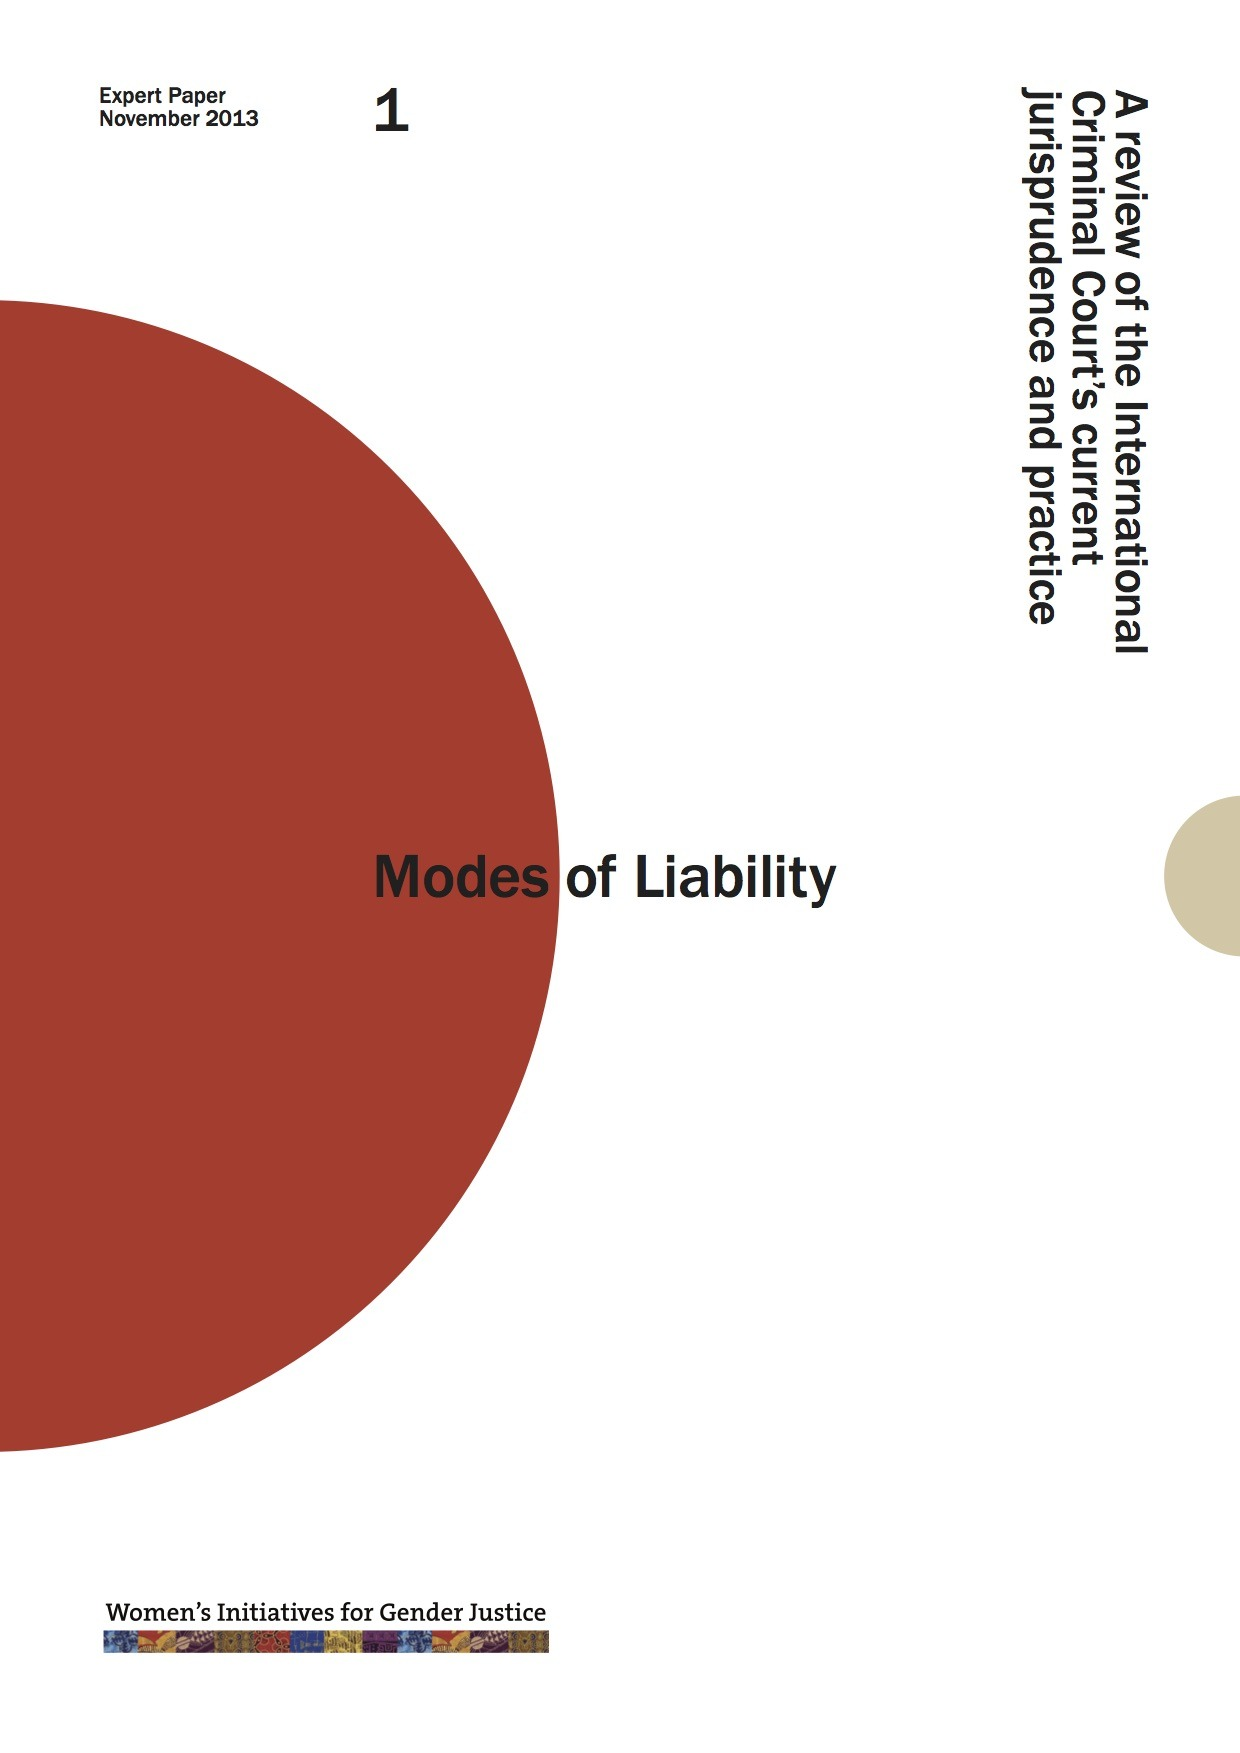 Modes of Liability: Expert Report